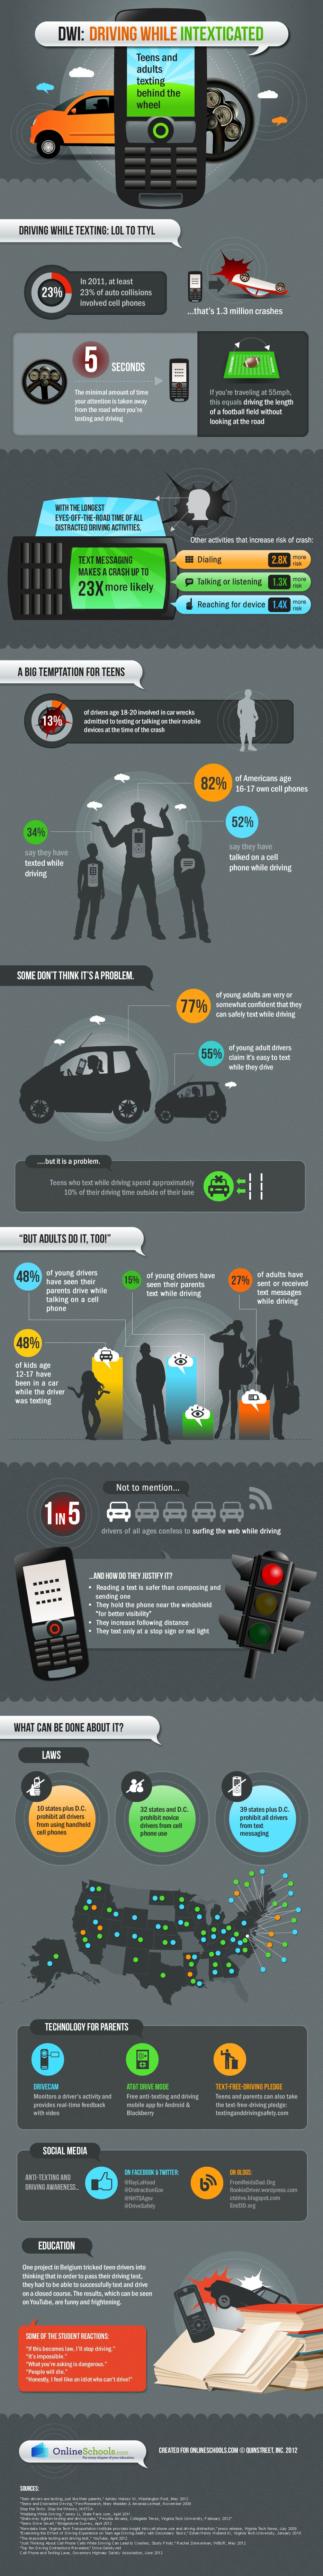 Infographic: DWI: Driving While Intexticated